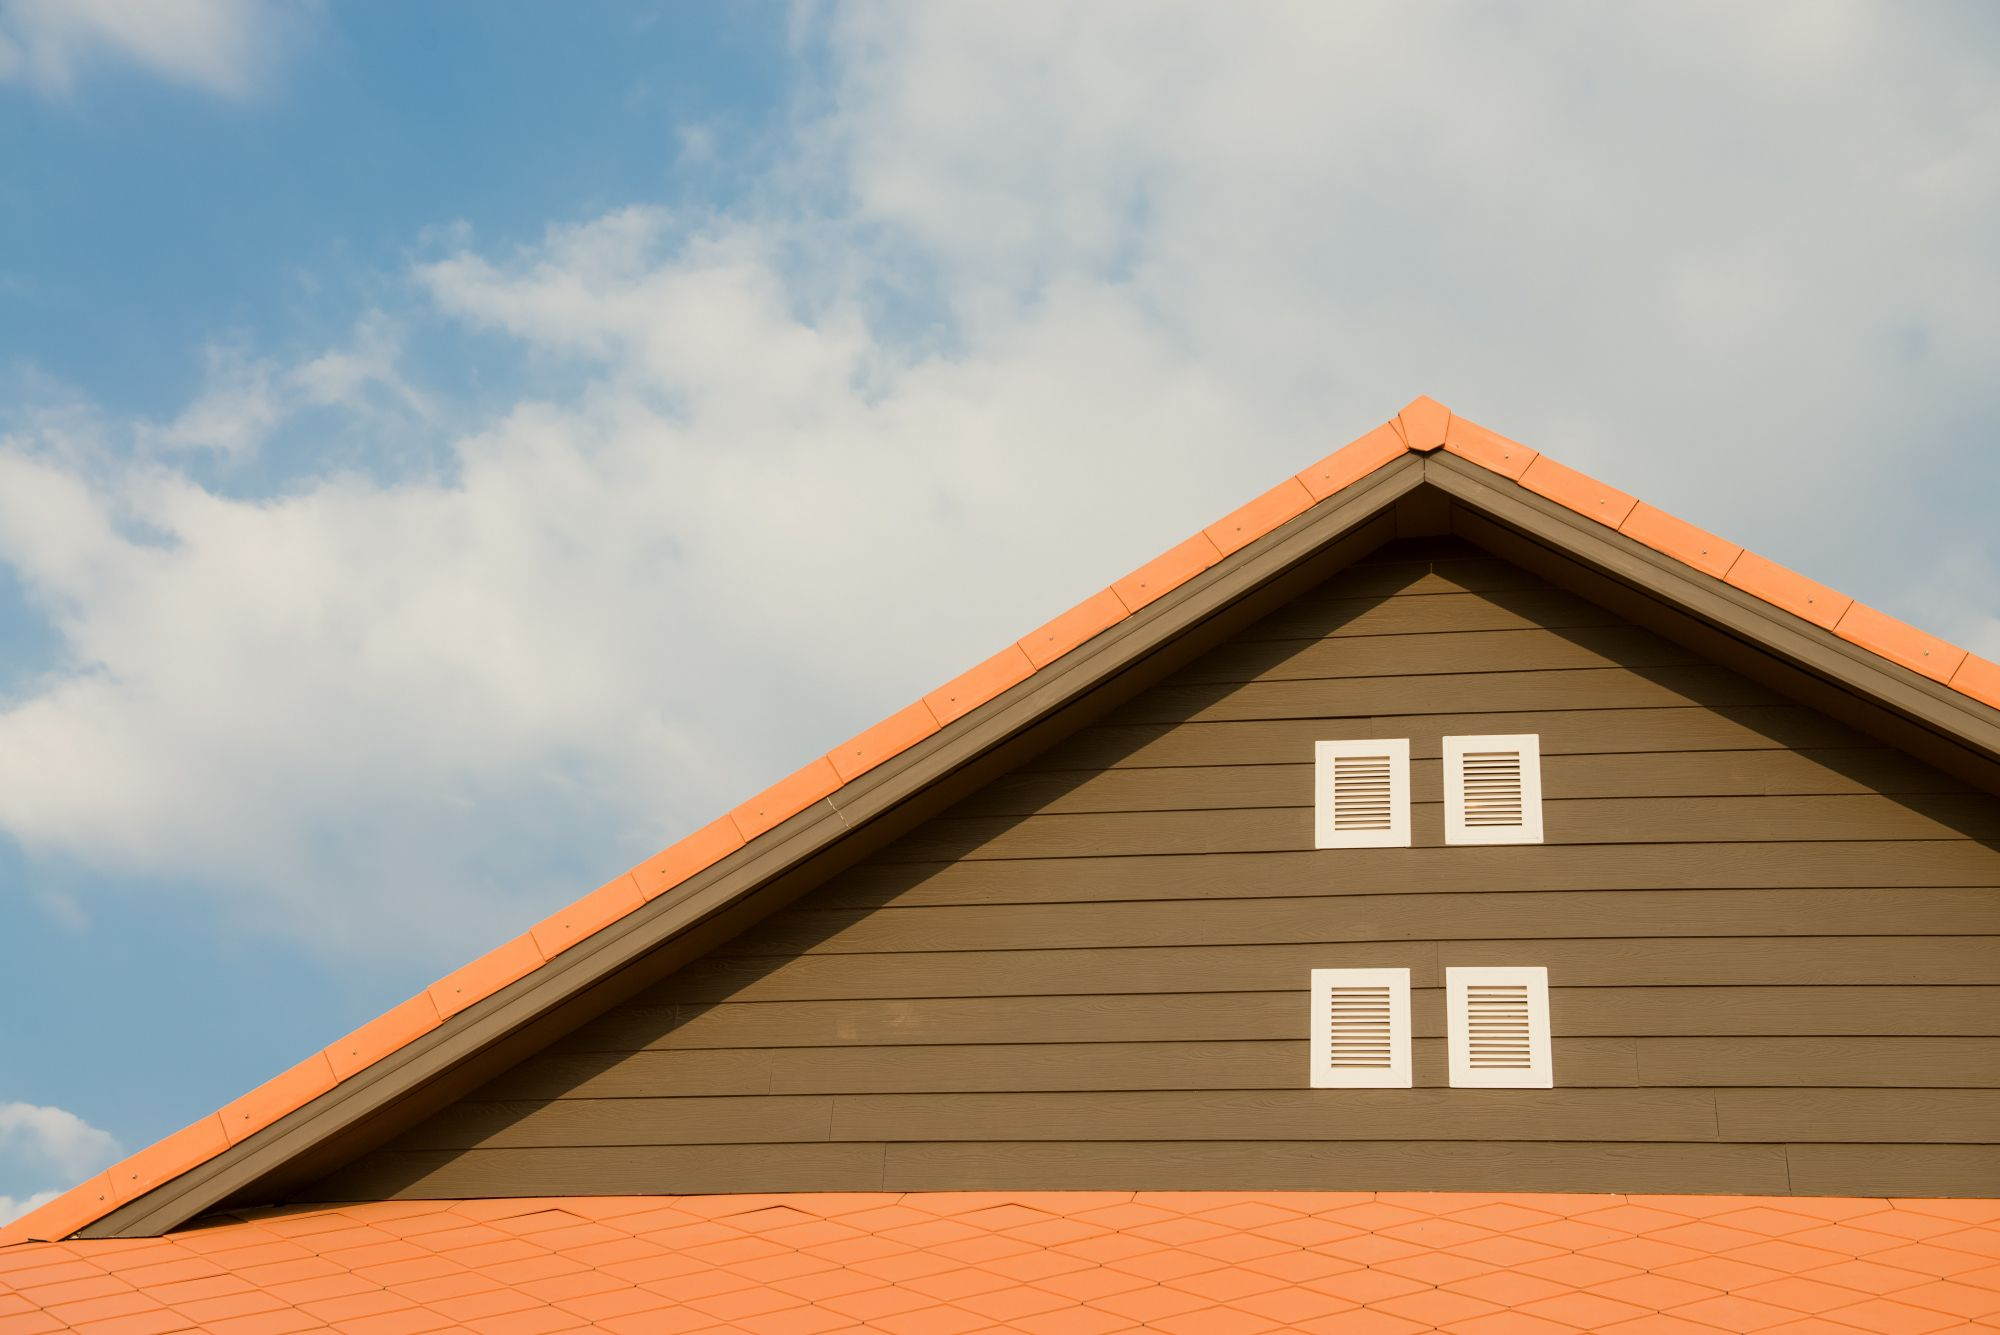 P When The Exterior Of Your Roof Is Starting To Look Worn And Weathered You Need To Bring In The Experts From Som Roof Restoration Roofing Roofing Contractors